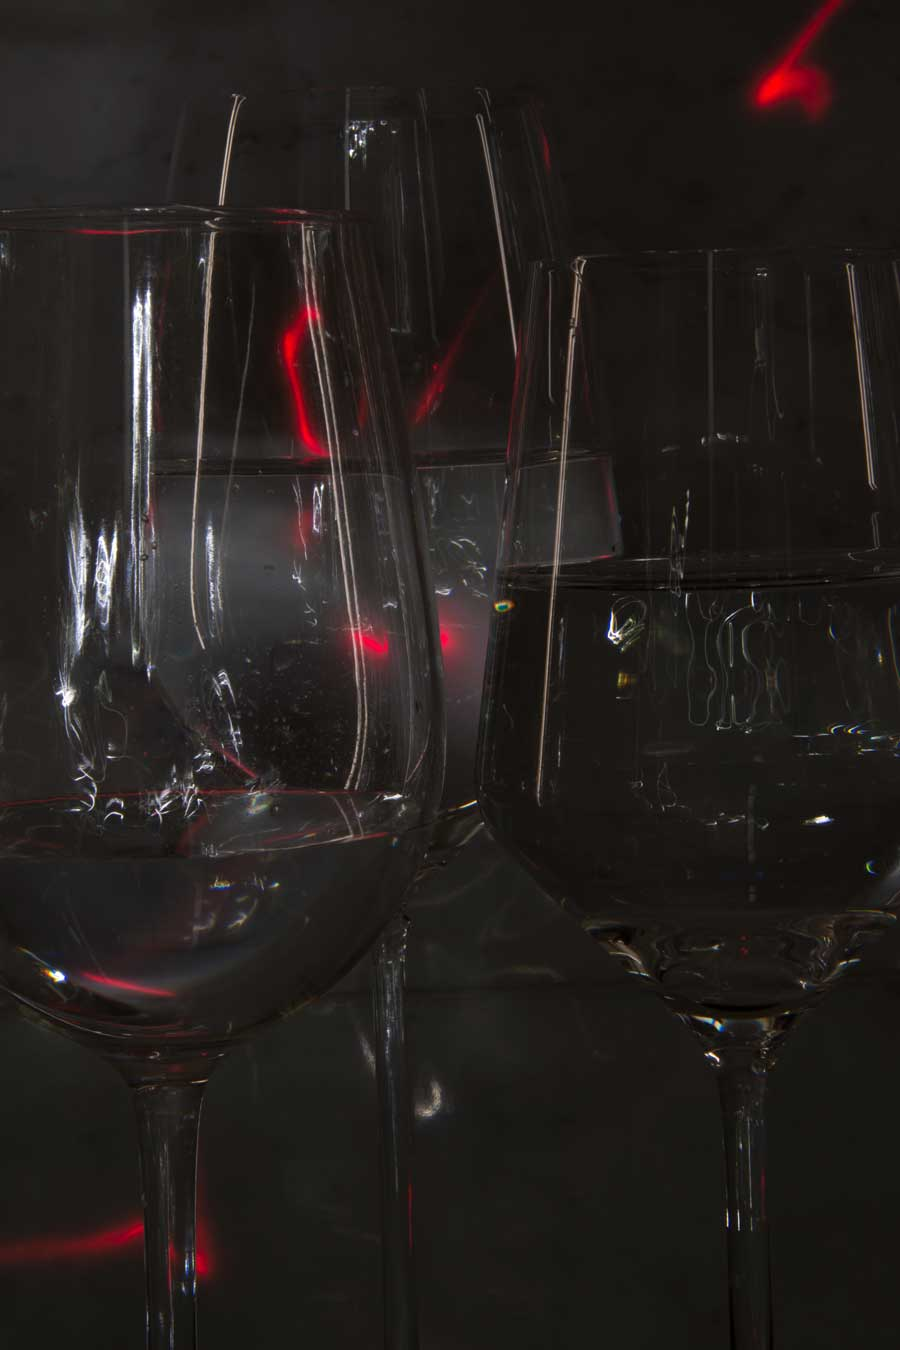 Light Painted Glassware© Naida Ginnane 2018, Nikon D800, 24-70mm lens.   Wine glasses with different levels of water. I left the door of my dark space open a fraction to create the long lines of light on the sides of the glasses. The rest was achieved with my torch and a tiny spot of laser light.